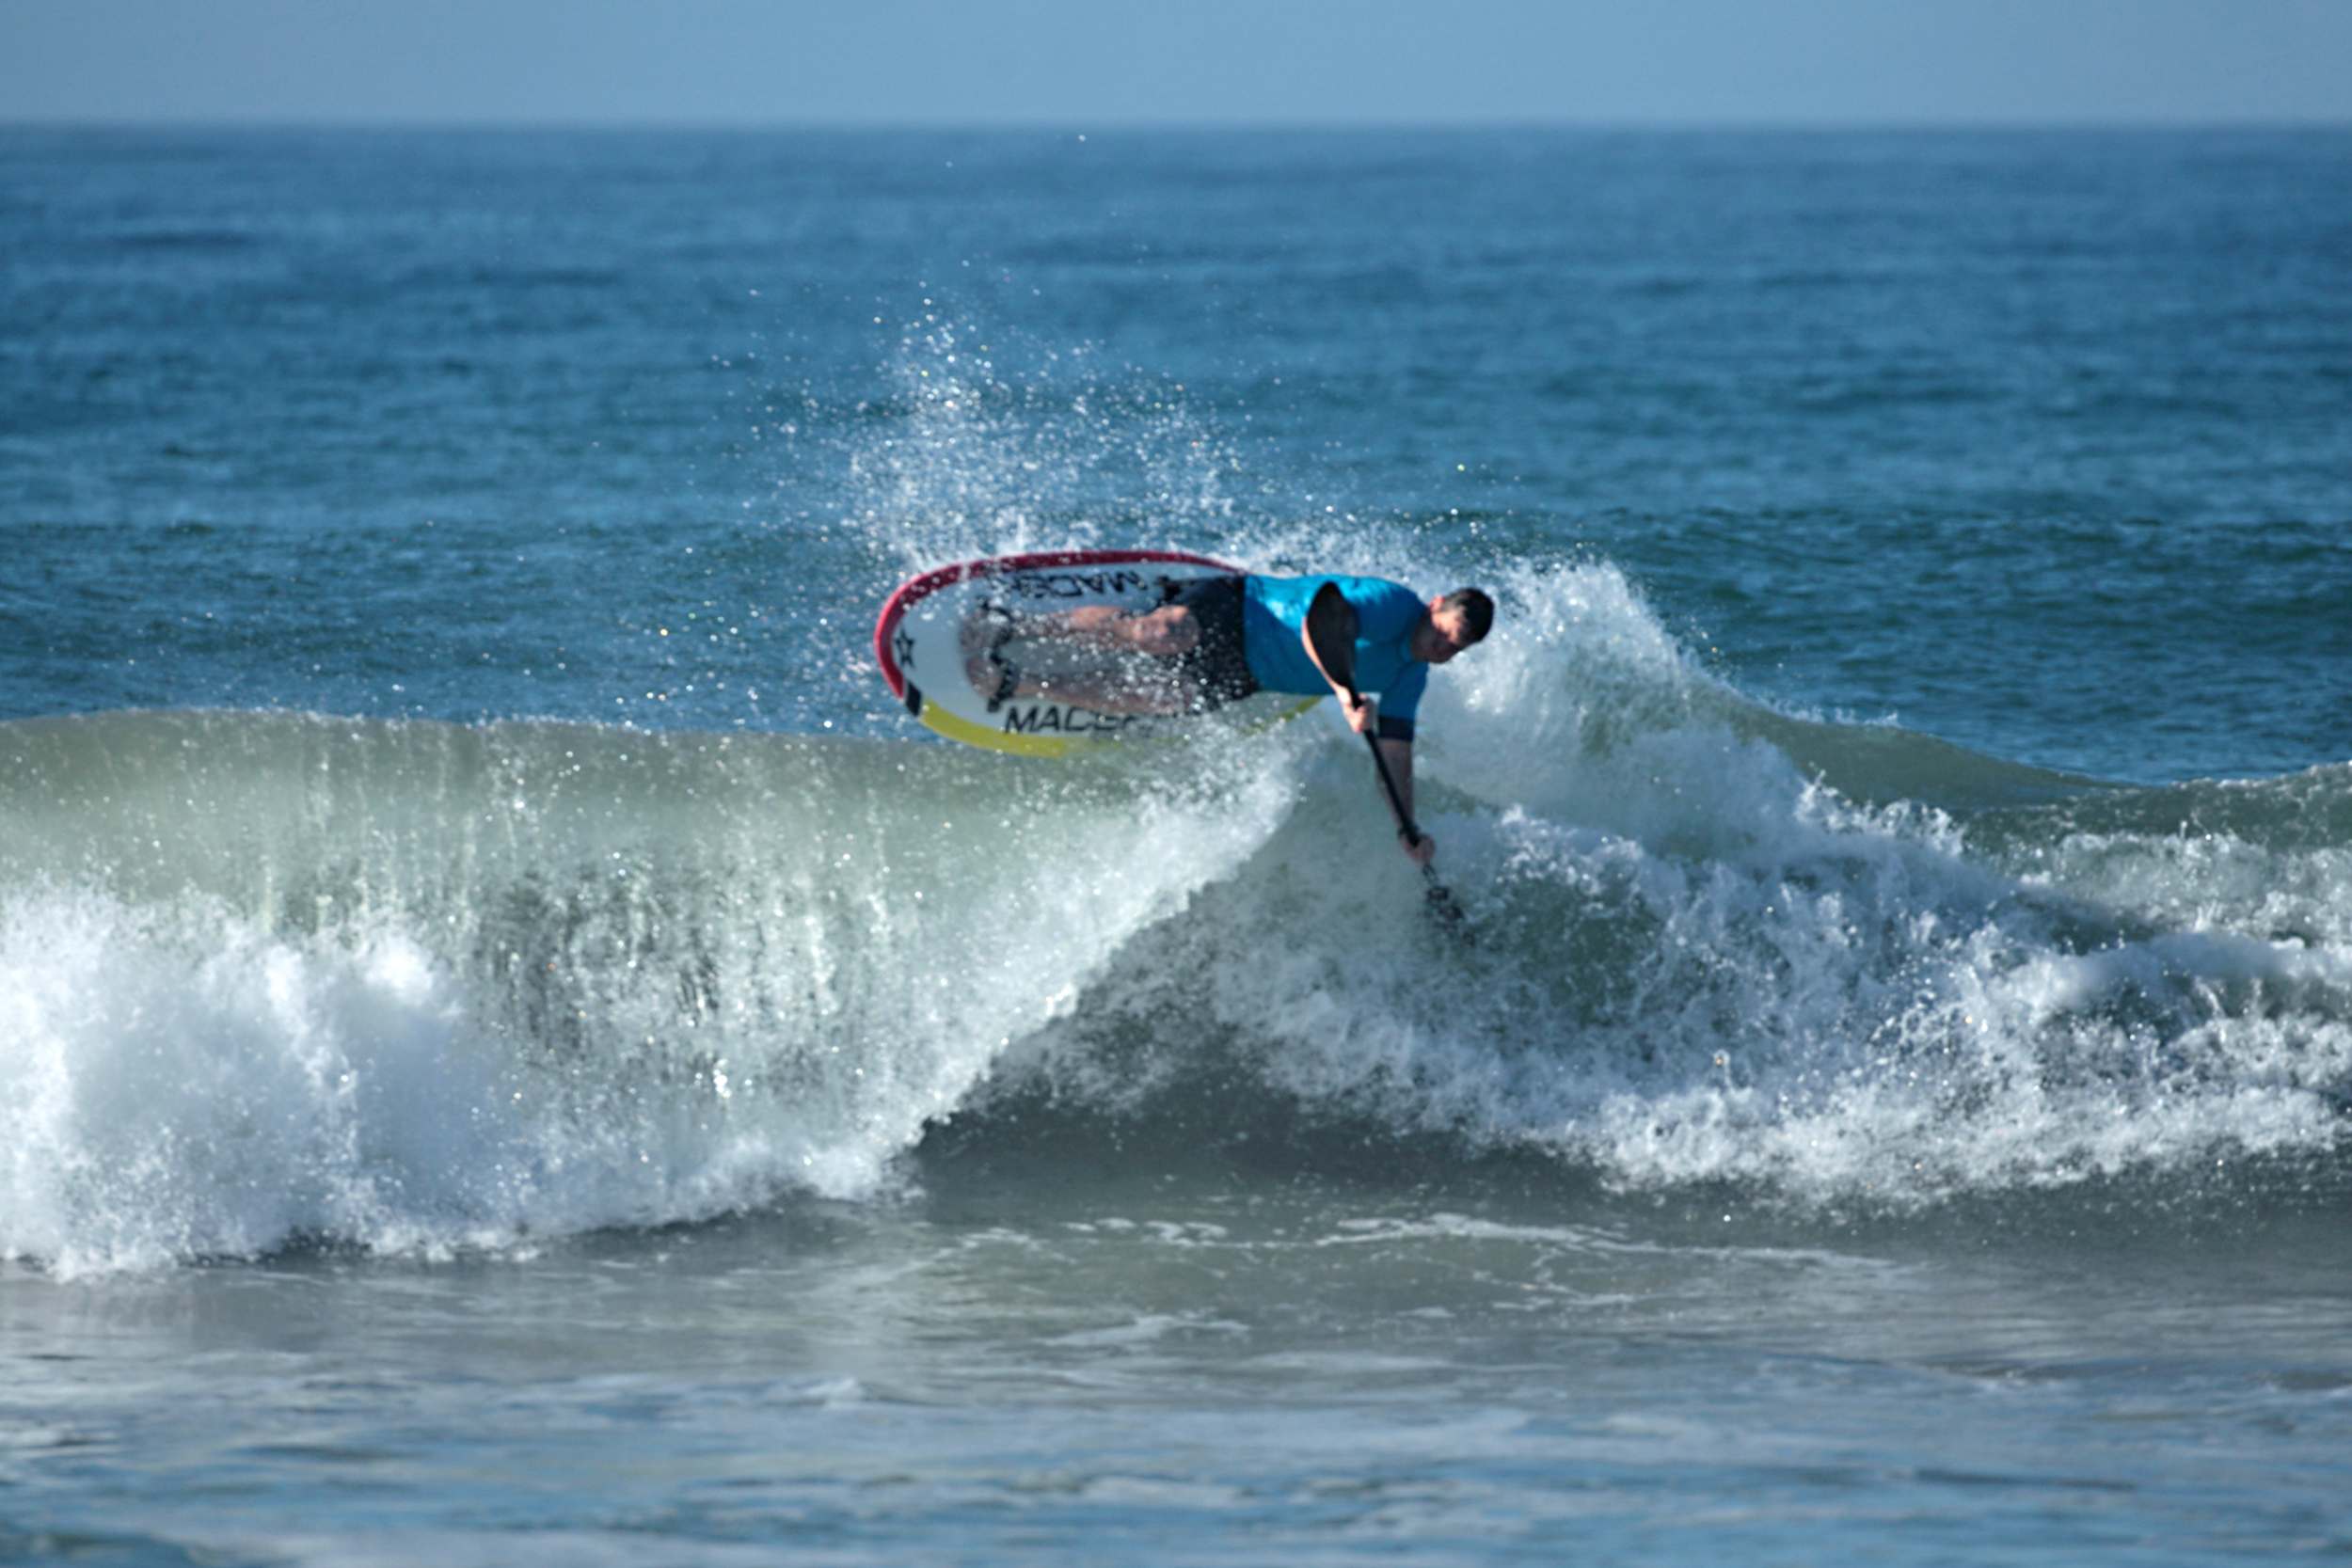 Ventura Paddle Surfing Championships - Friday October 9th 2015 (click on pic to view gallery)